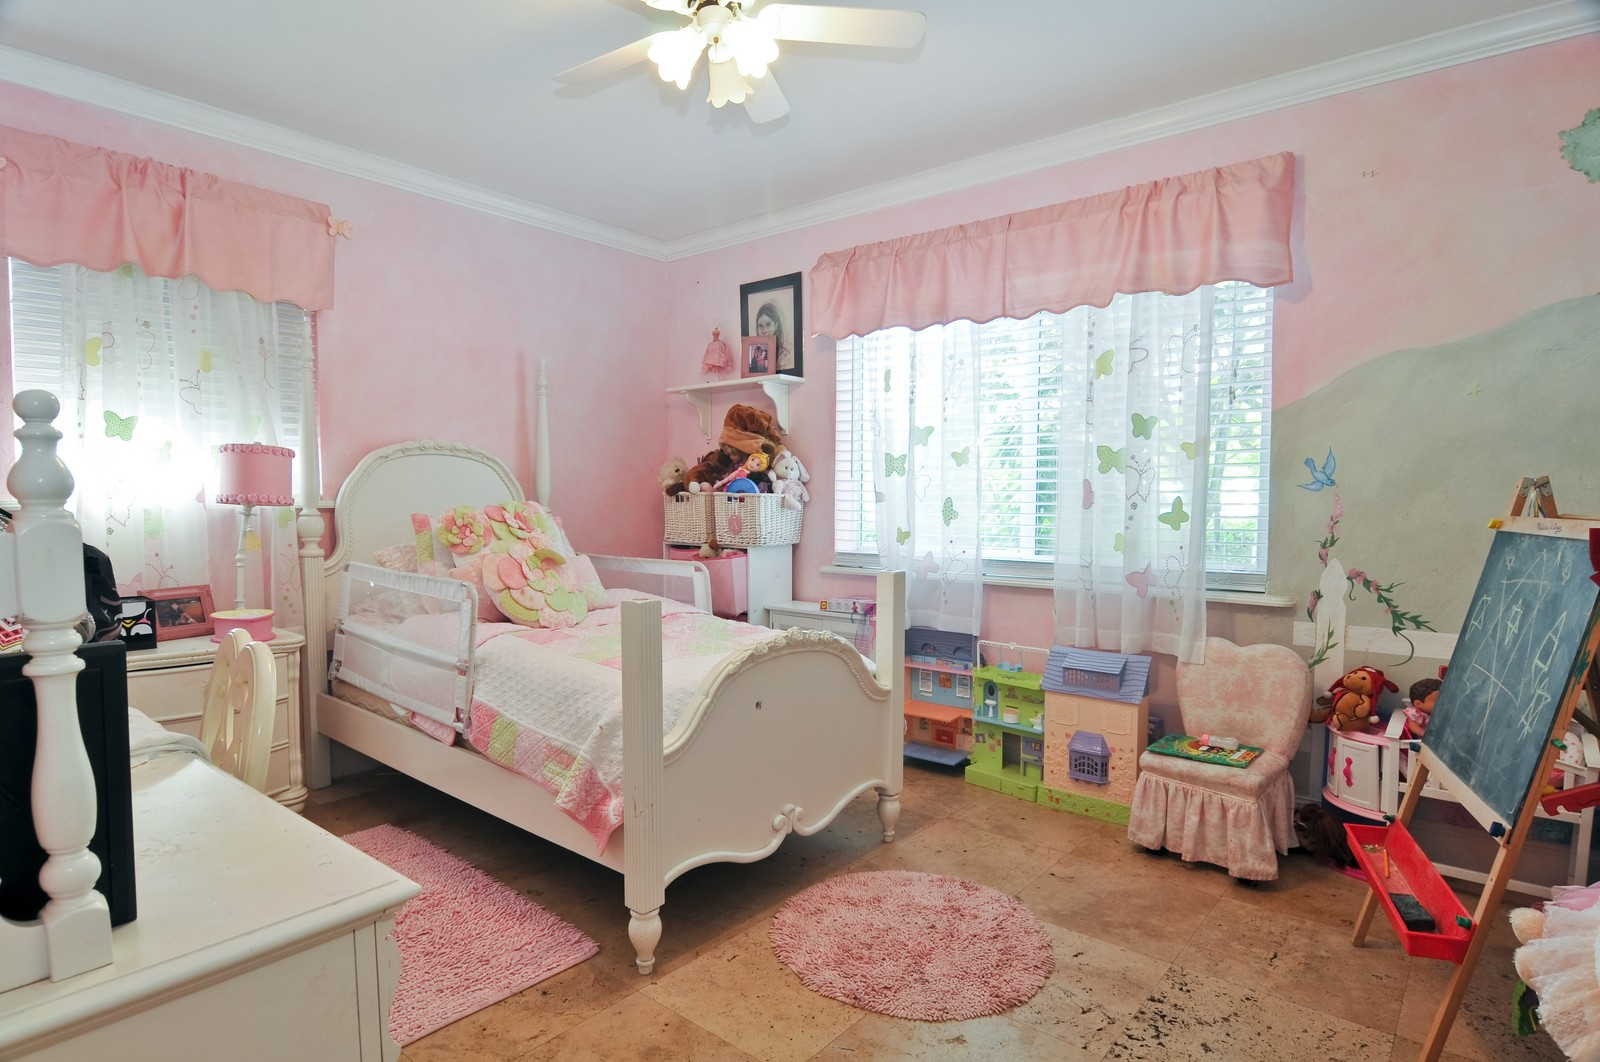 Real Estate Photography - 285 Glenrigde Rd, Key Biscayne, FL, 33149 - Kids Bedroom